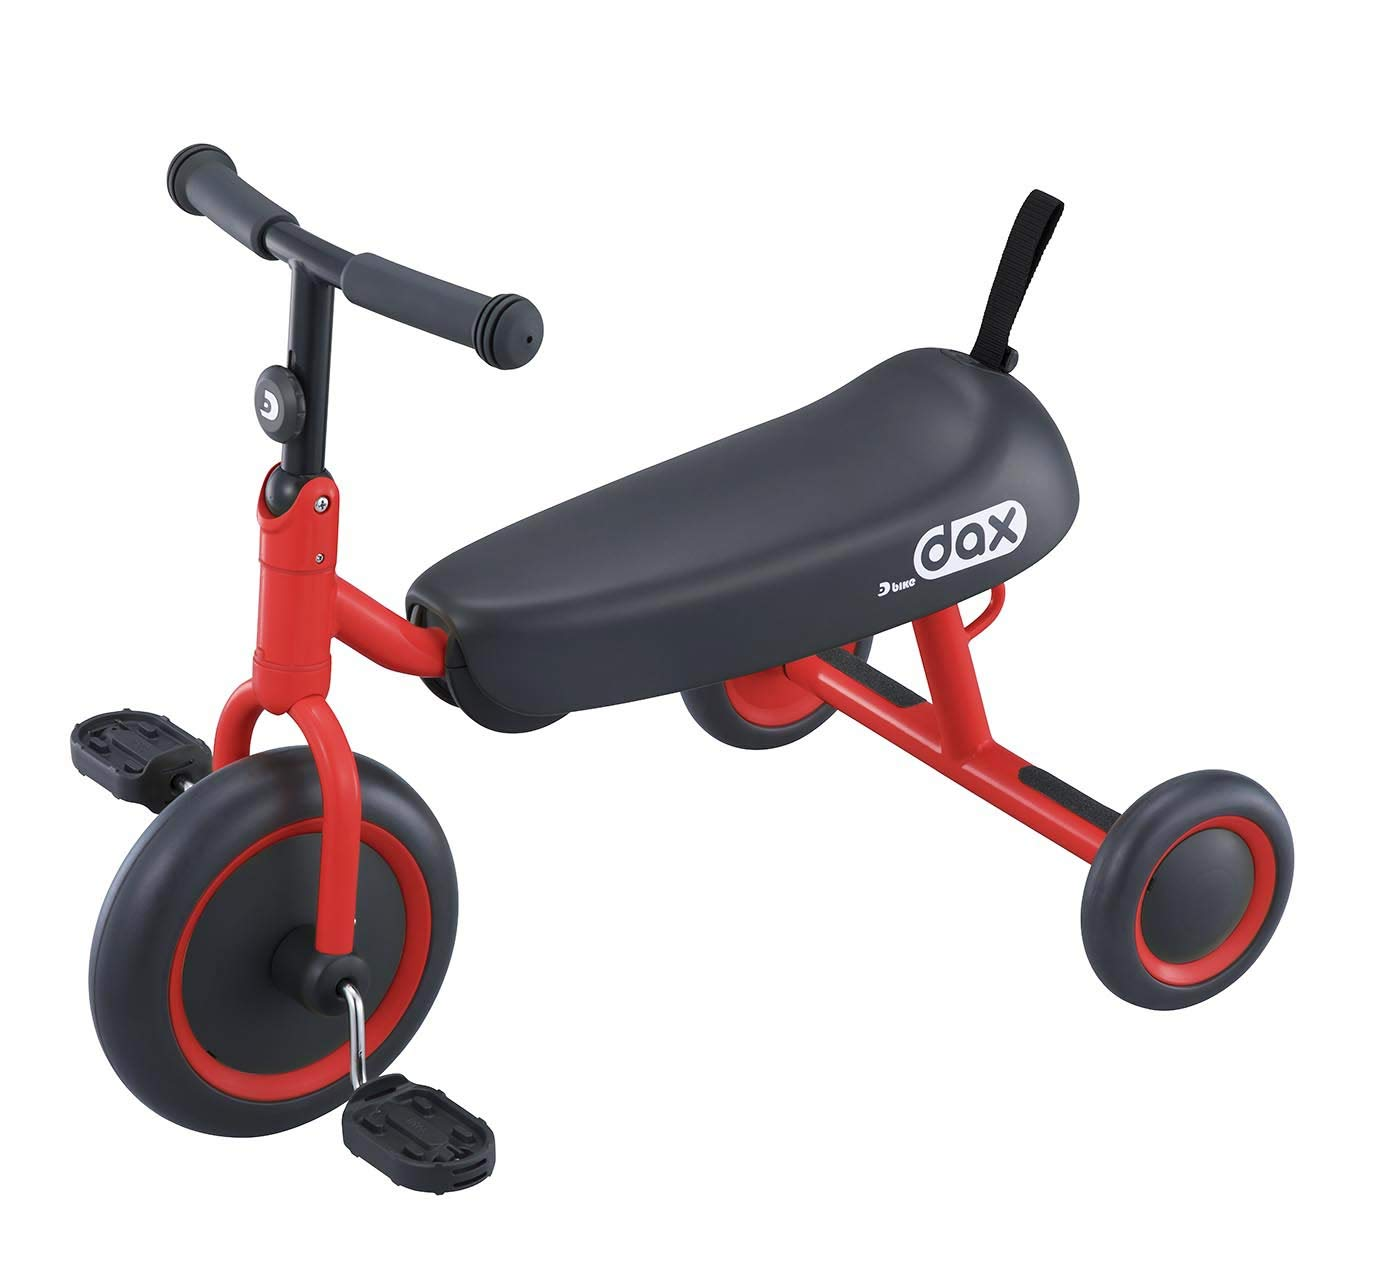 D-bike D-bike dax B07H3YTY6N レッド dax B07H3YTY6N, 財布 バッグ ショップ カッズ:afebdb6b --- number-directory.top